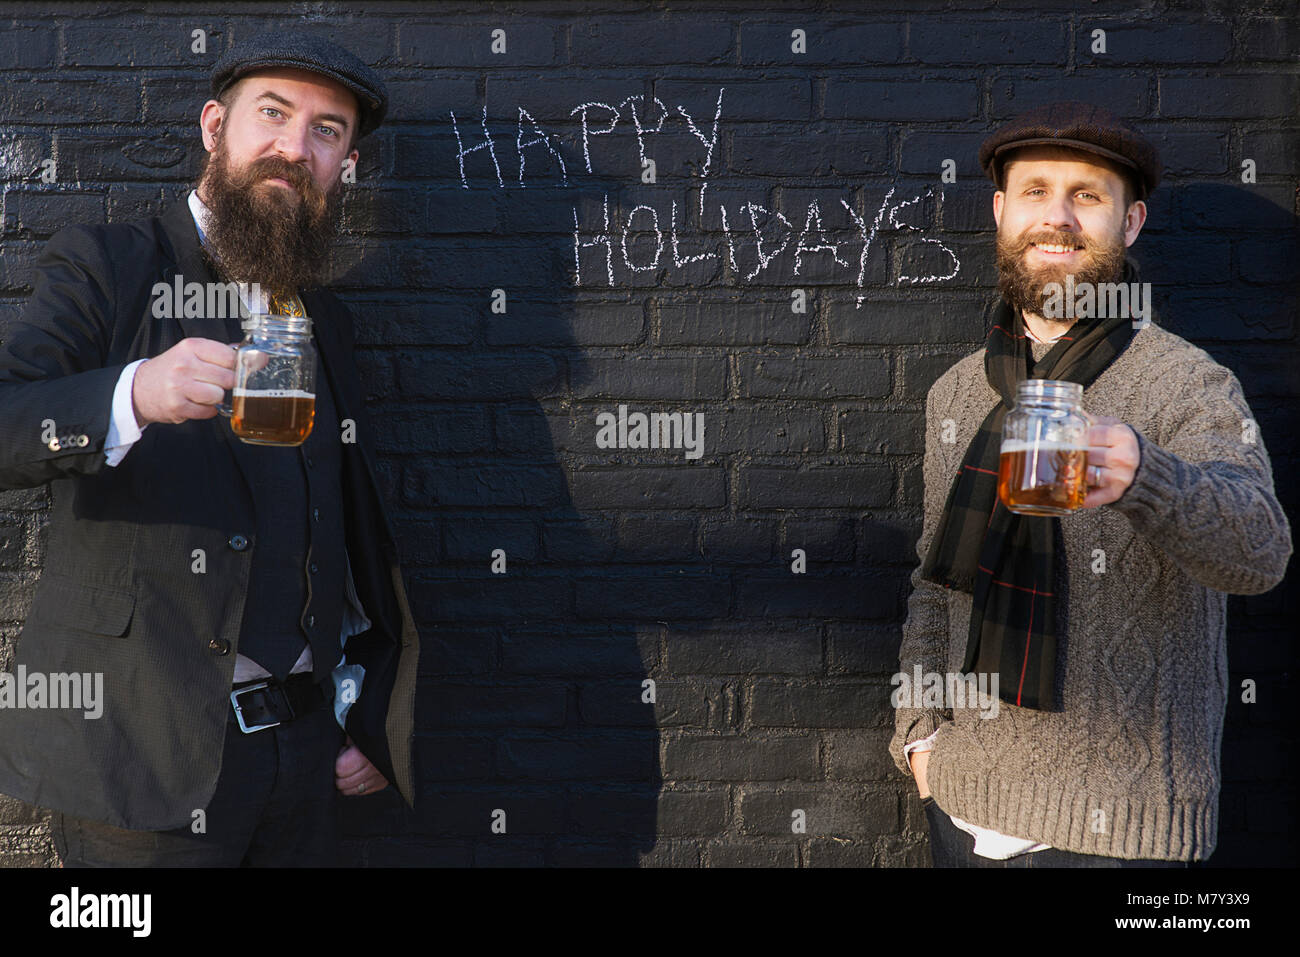 Holiday photo of two men drinking beer with Christmas greetings on the wall behind them. - Stock Image